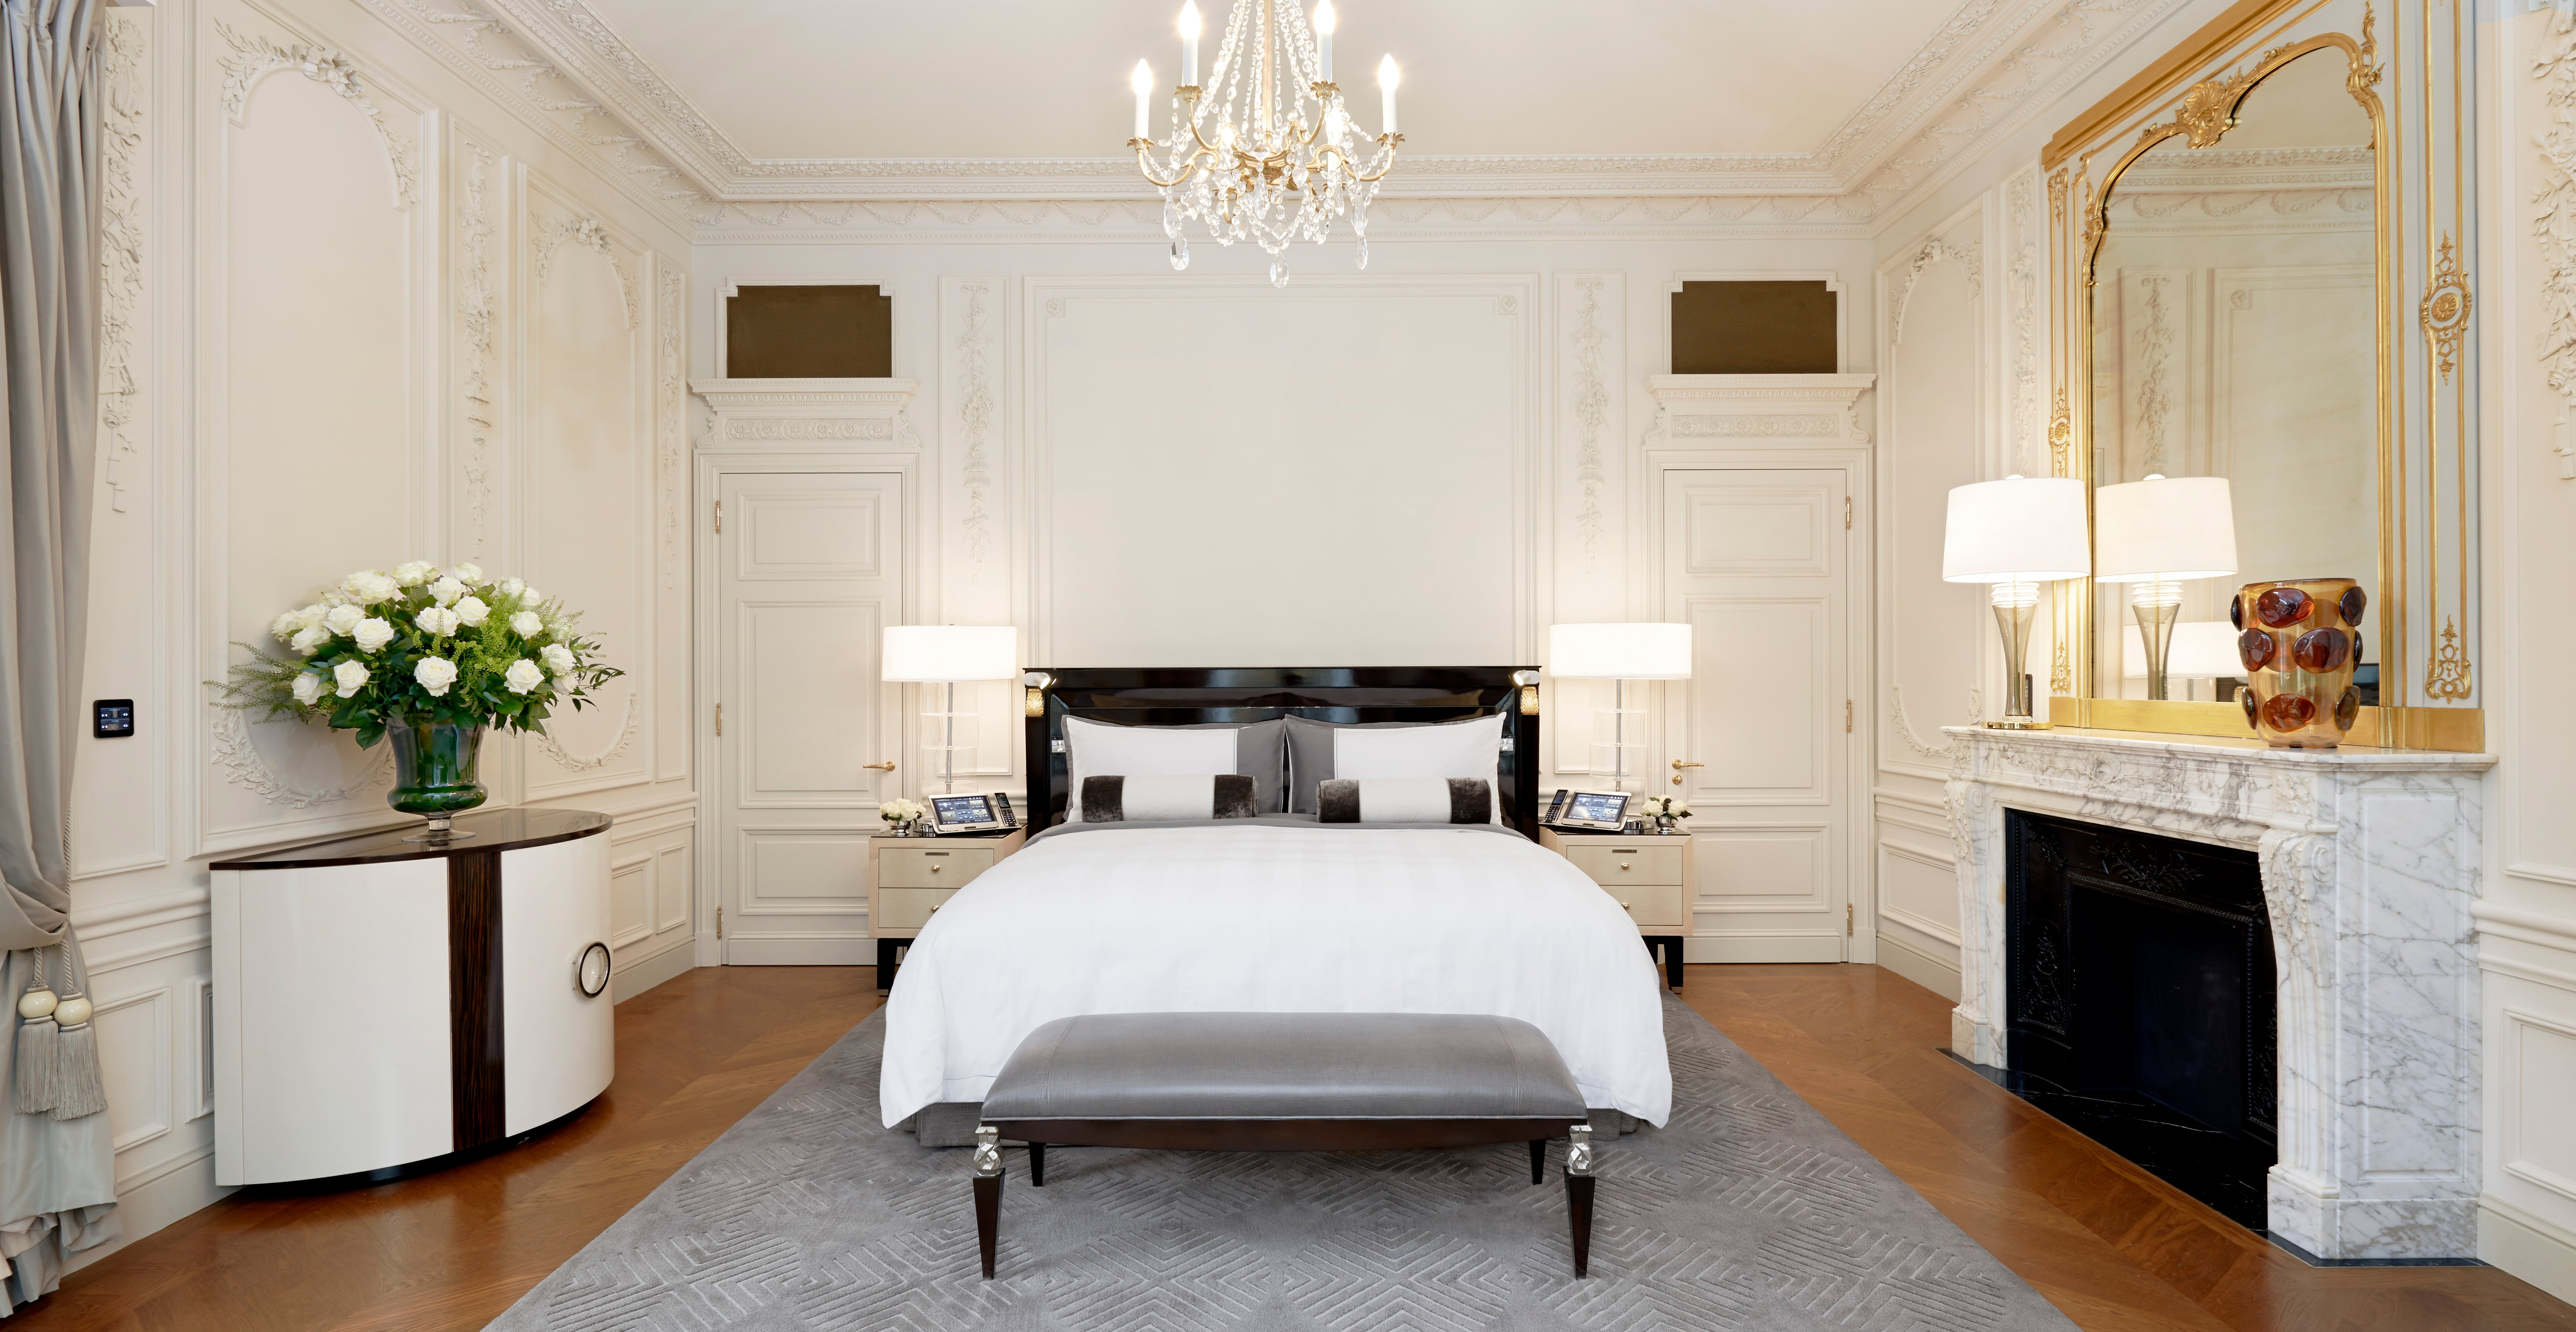 Parisian Bedroom. With its original mouldings  woodwork and gold leaf this 217 sq m 2 336 ft suite distinguishes itself by decidedly Parisian elegance The Theme Suites at Peninsula Paris Hotel Showcase their